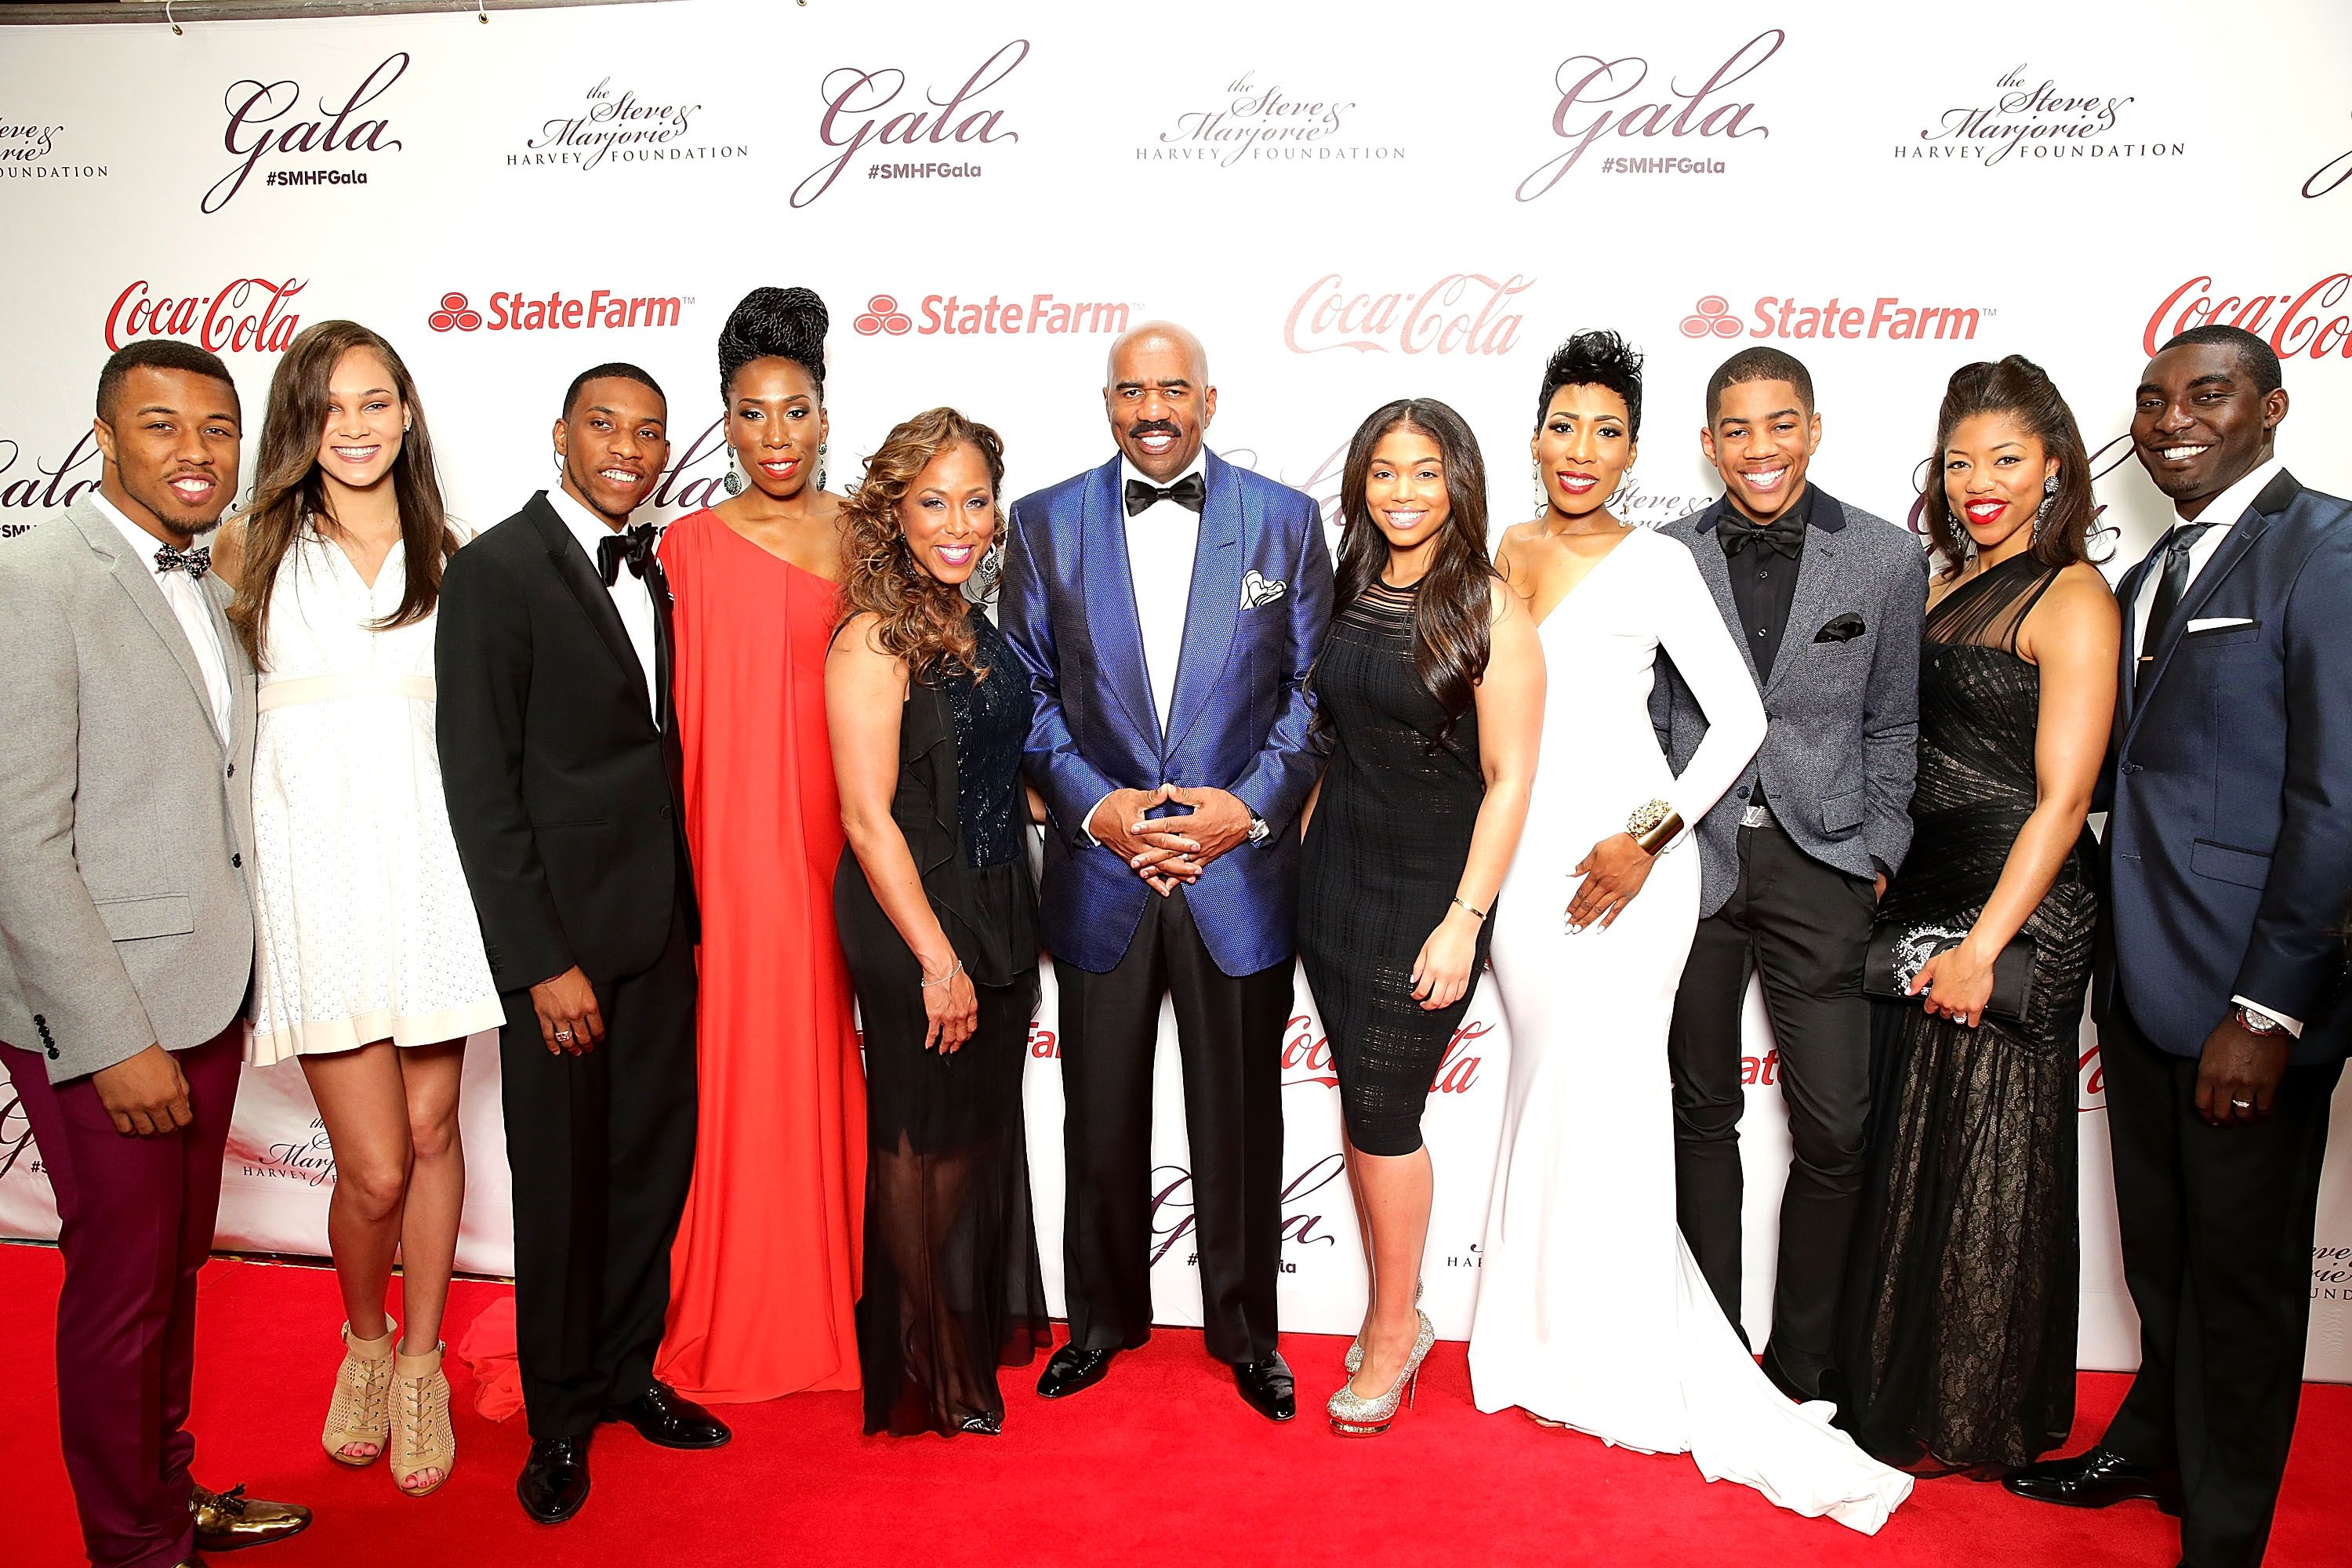 Steve and Marjorie Harvey's blended family in 2014. From left to right, Jason Harvey with wife, Amanda, Broderick Harvey, Jr., Brandi Harvey, Marjorie and Steve, Lori Harvey, Karli Harvey, Wynton Harvey, Morgan Hawthorne and husband, Kareem. | Photo: Getty Images